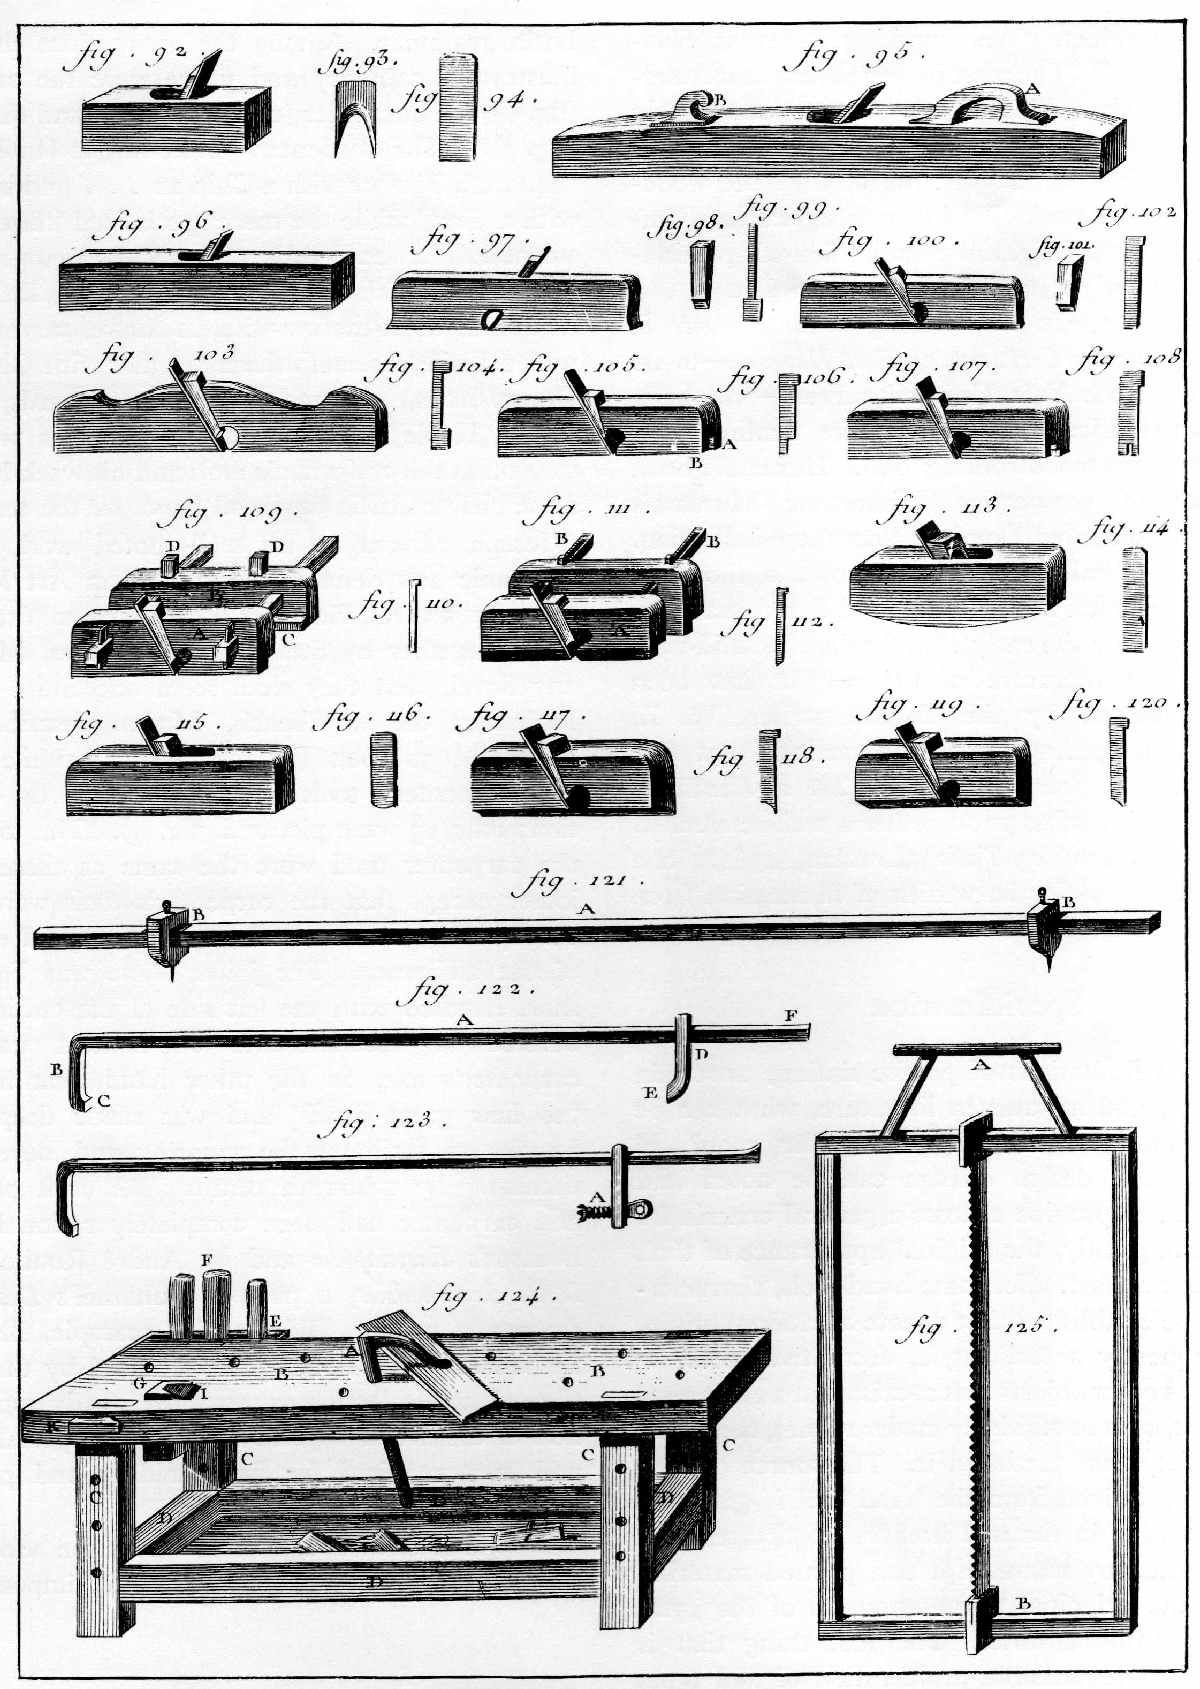 Timber Frame Tools » Specialization of Woodworking Tools 1600-1900 ...